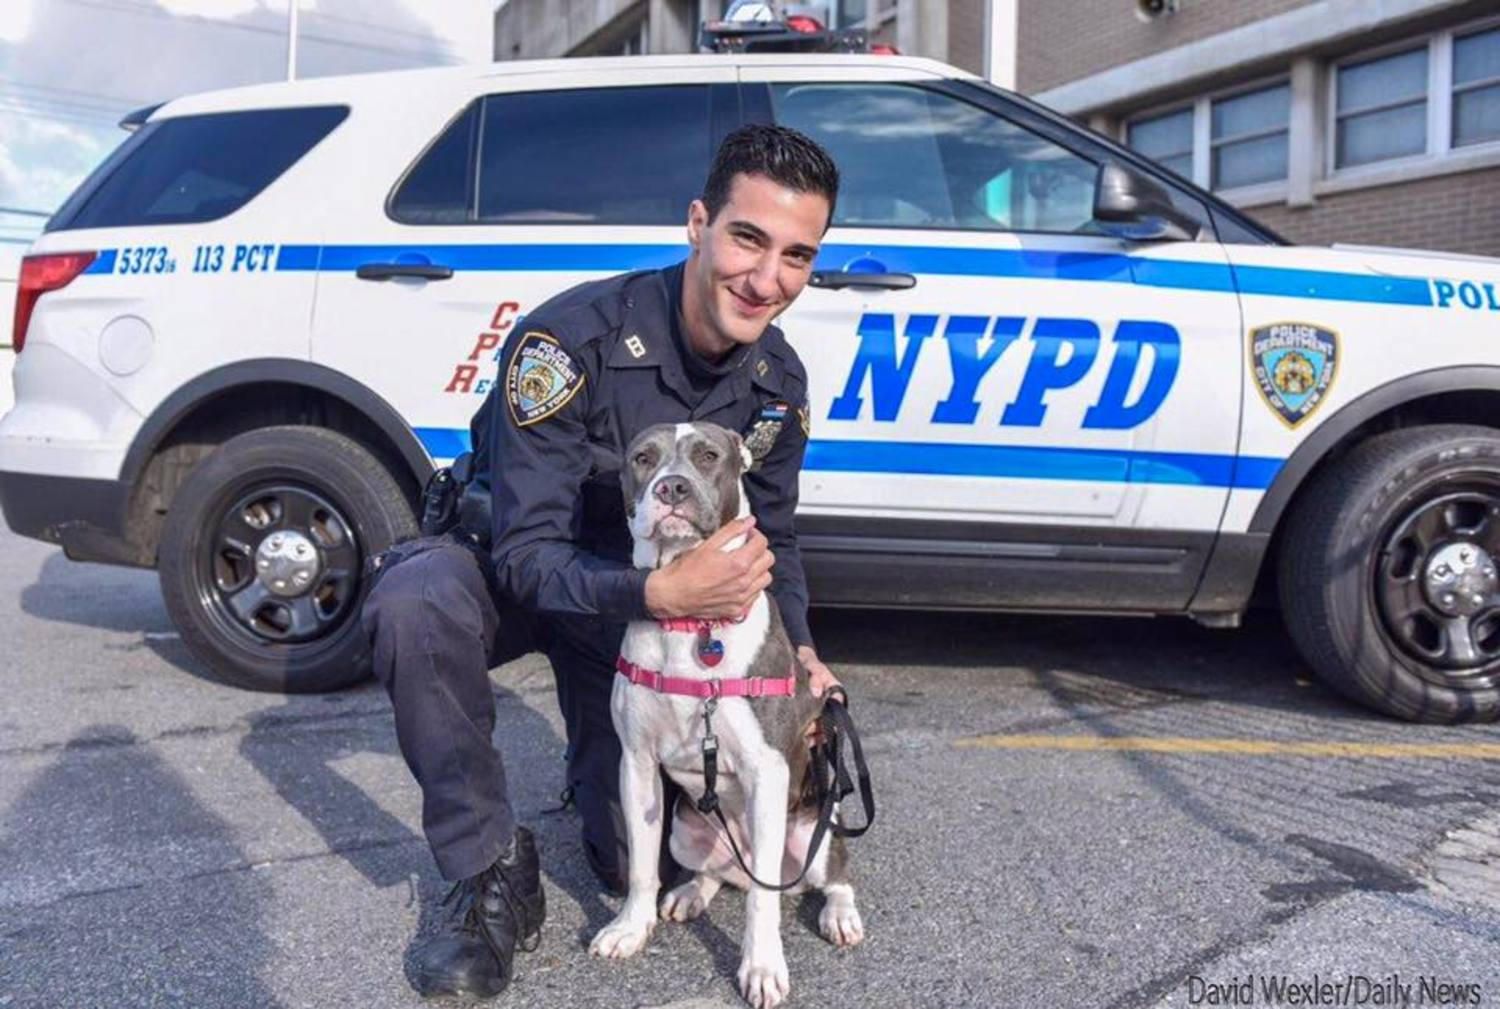 Queens Cop Adopts Pit Bull Puppy He Rescued From Abandoned Building